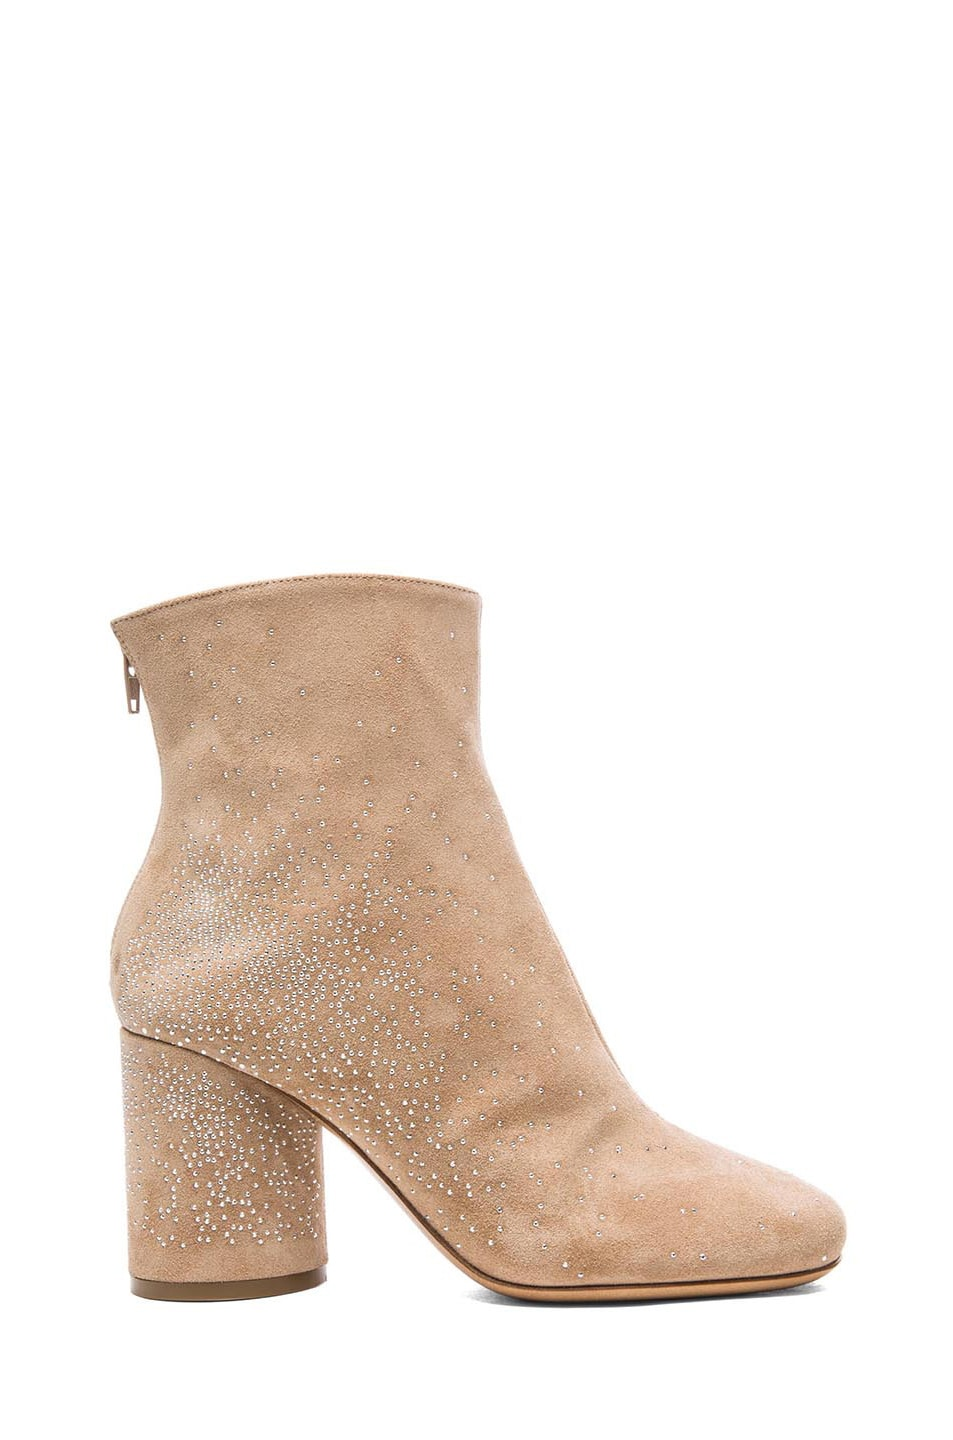 Image 1 of Maison Margiela Suede Studded Booties in Flesh